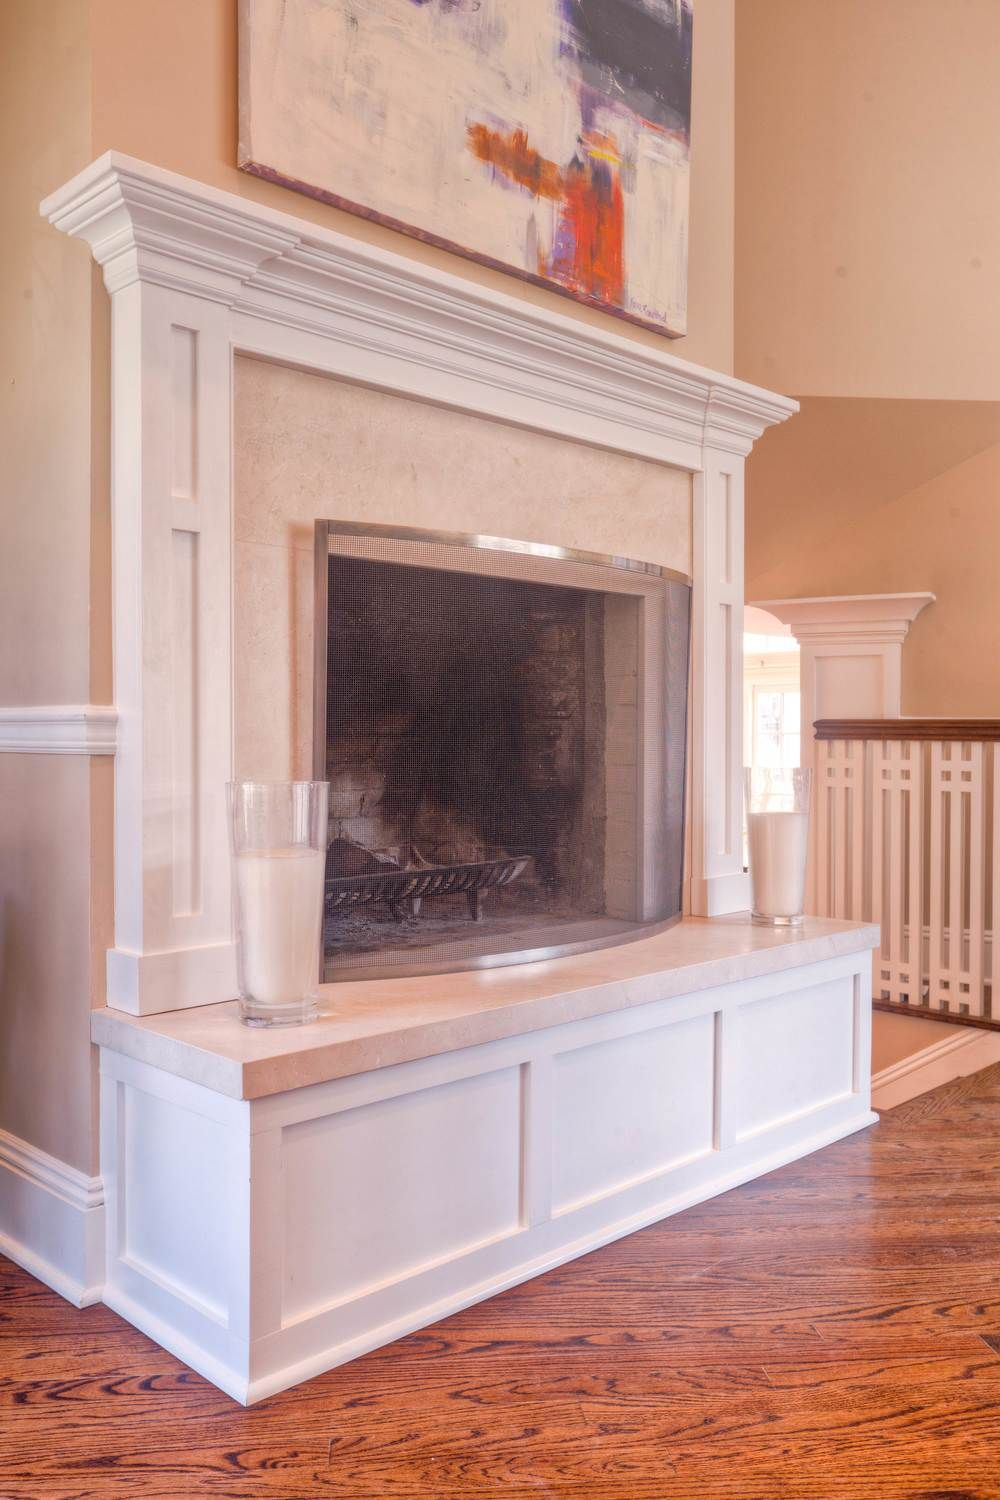 Fireplace Raised Hearth. fireplace hearths  Fireplace Raised Hearth images Building our